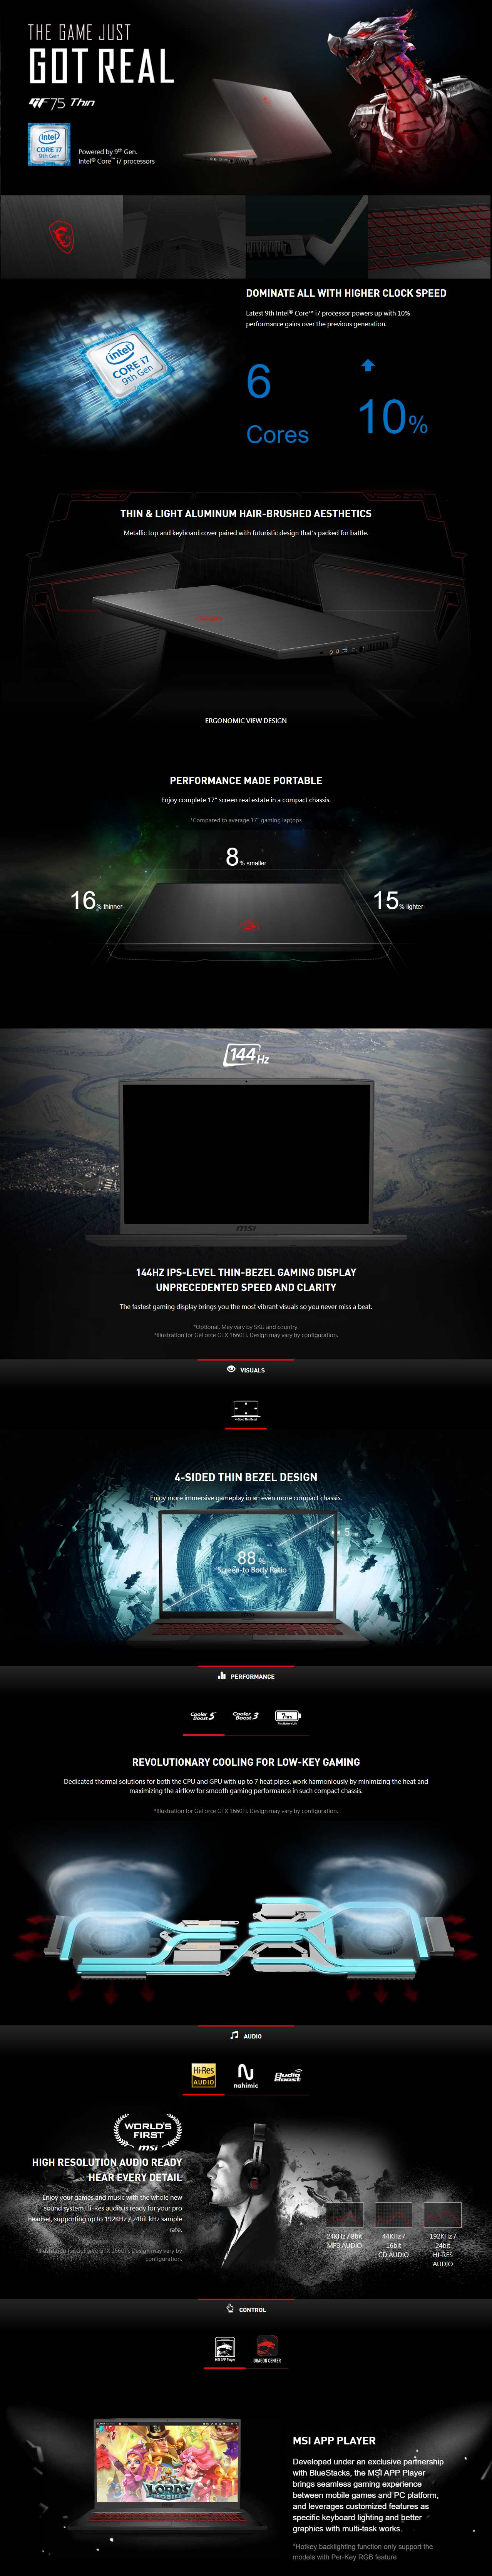 """A large marketing image providing additional information about the product MSI GF75 Thin 9SC-291AU 17.3"""" i7 GTX 1650 Windows 10 Gaming Notebook - Additional alt info not provided"""